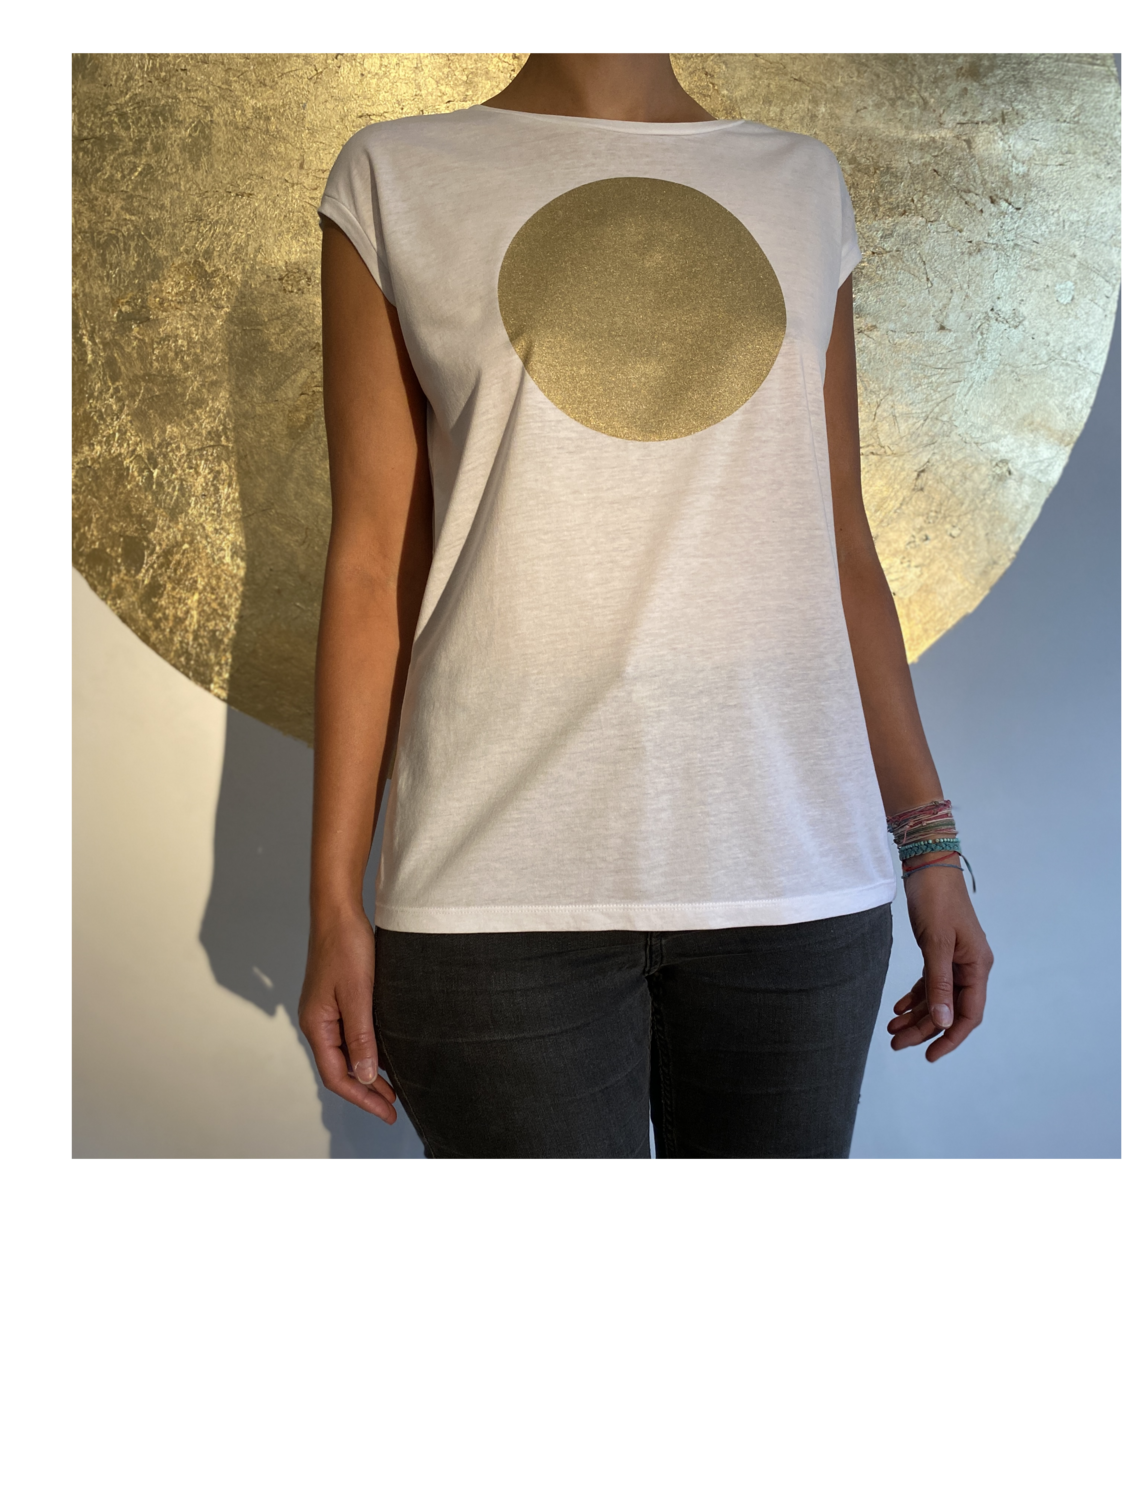 BE GOLDEN by The Lovers, Sleeveless T-shirt - weiß / Druck gold